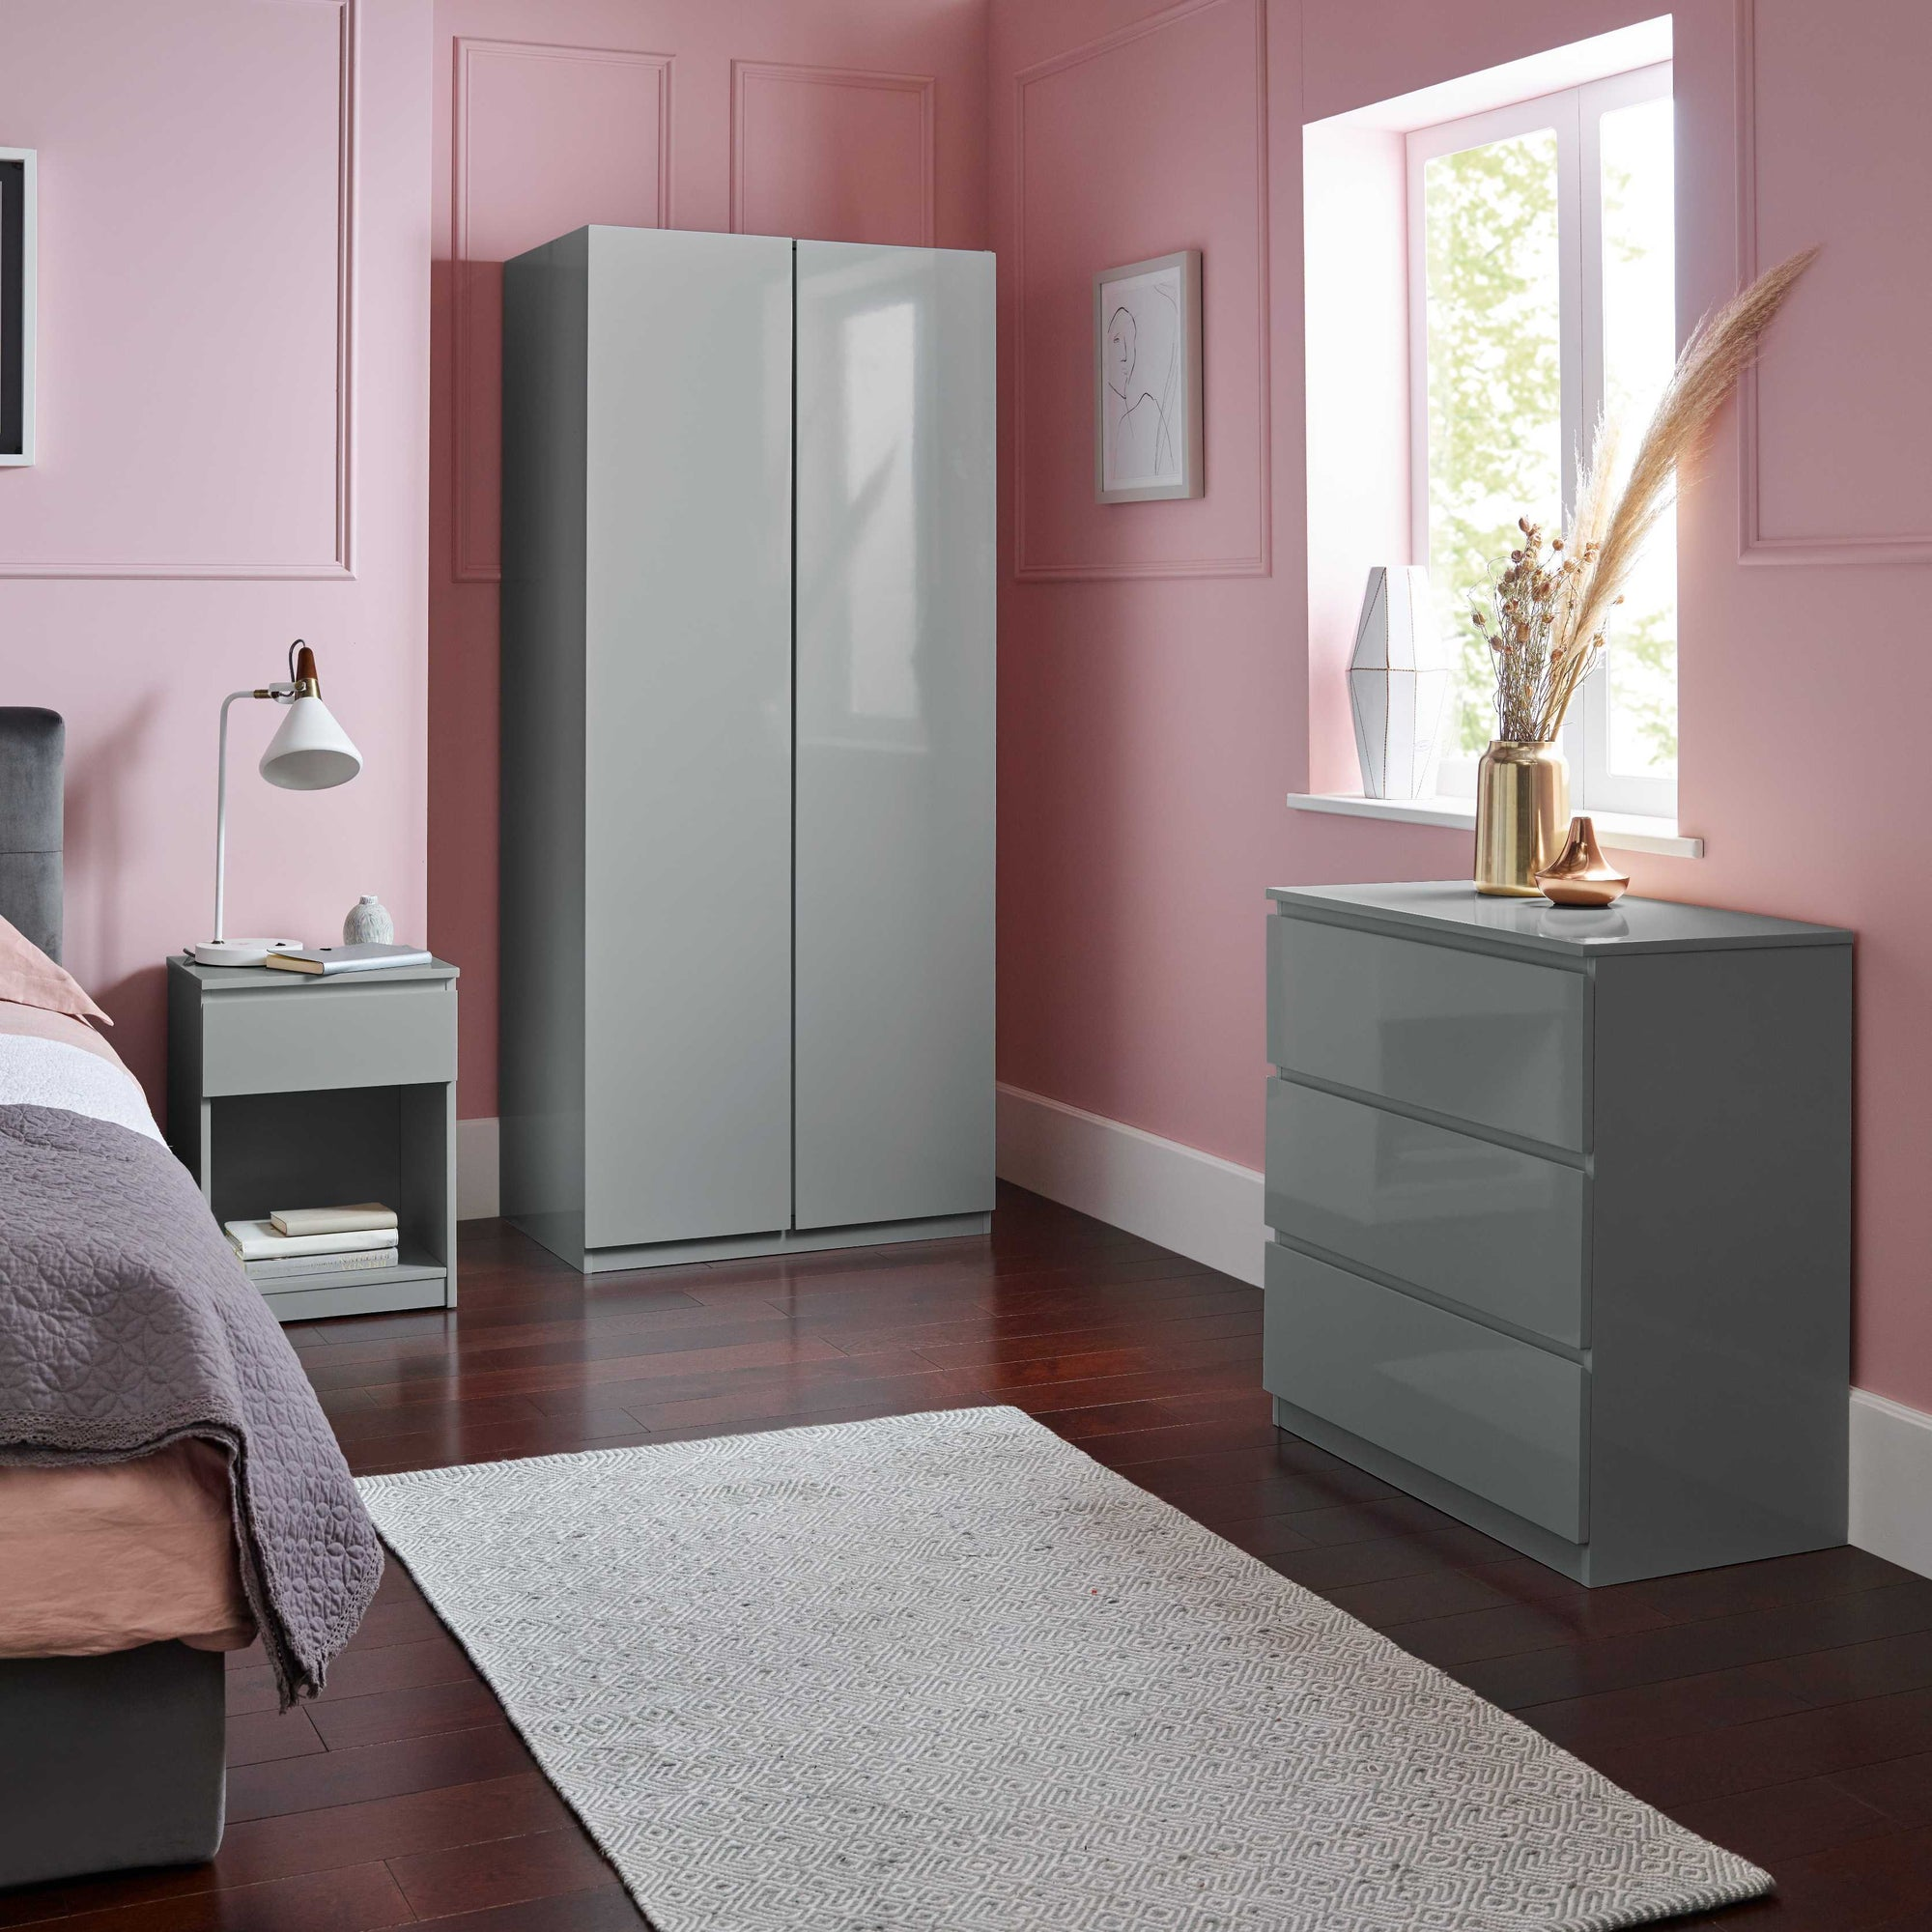 Clemmie bedroom furniture set - grey - Laura James